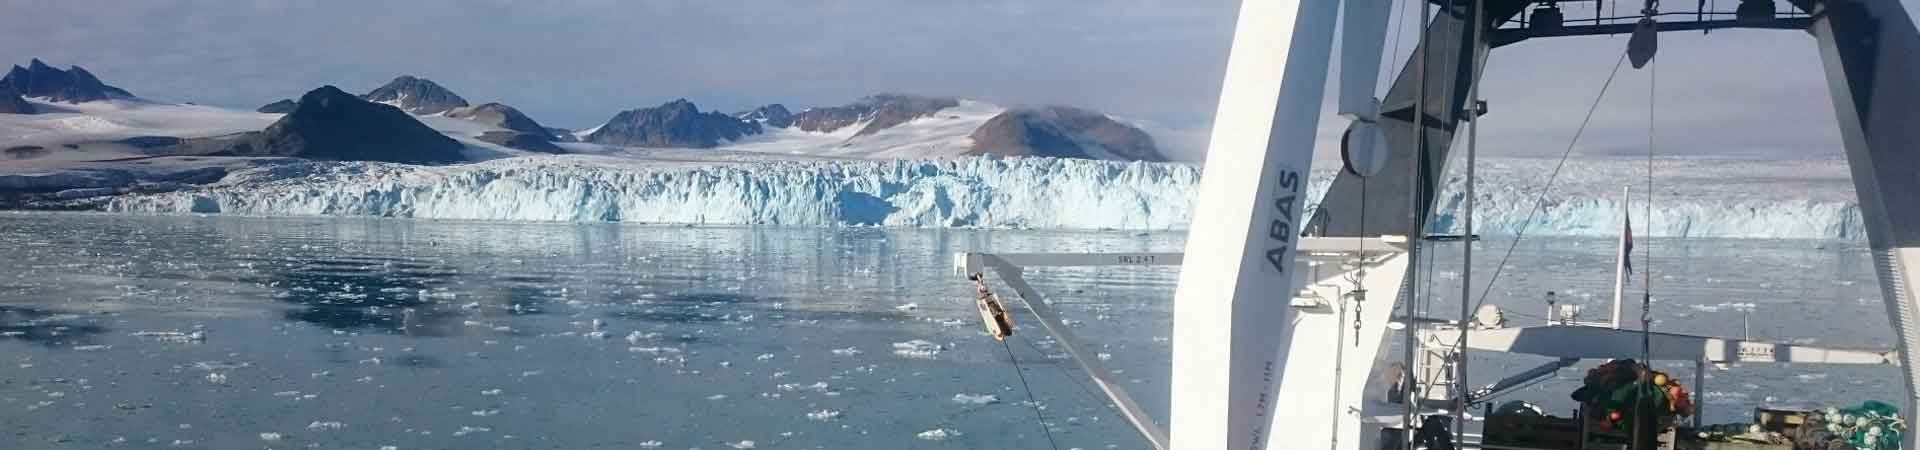 View from icebreaker research vessel of Arctic glacier